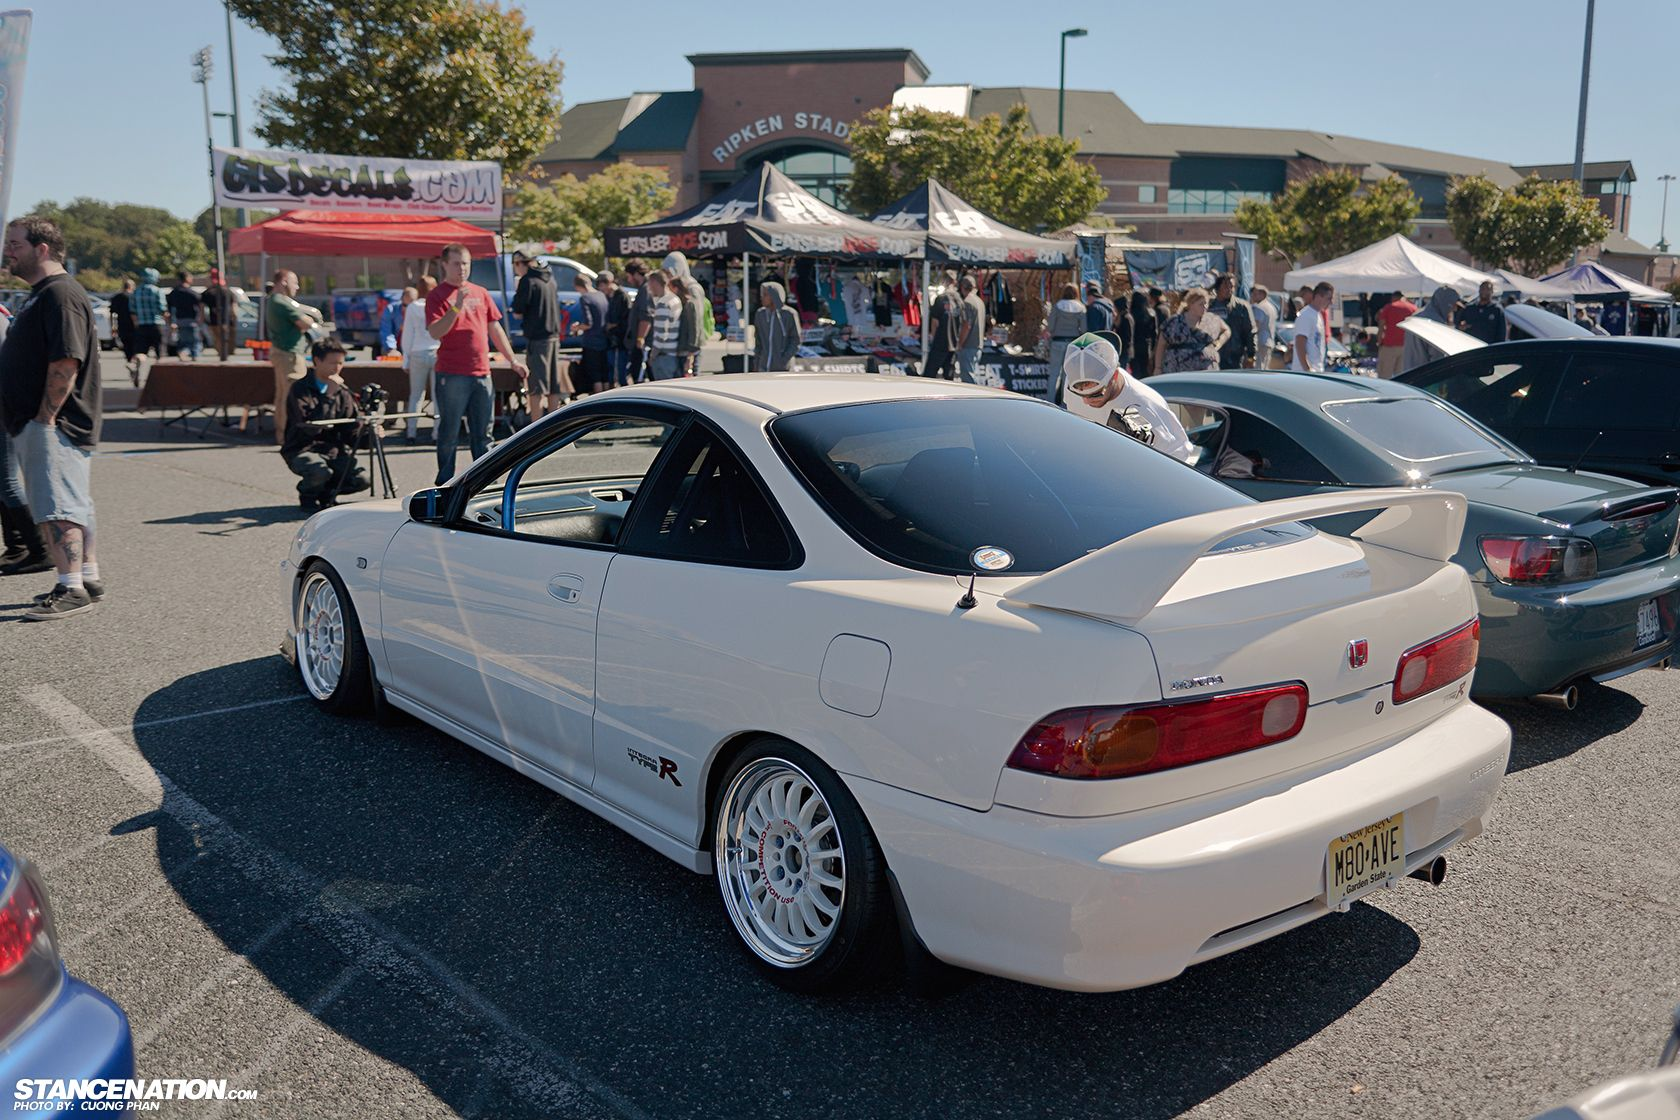 For sale! was a type R integra on craigslist in colorado area ...